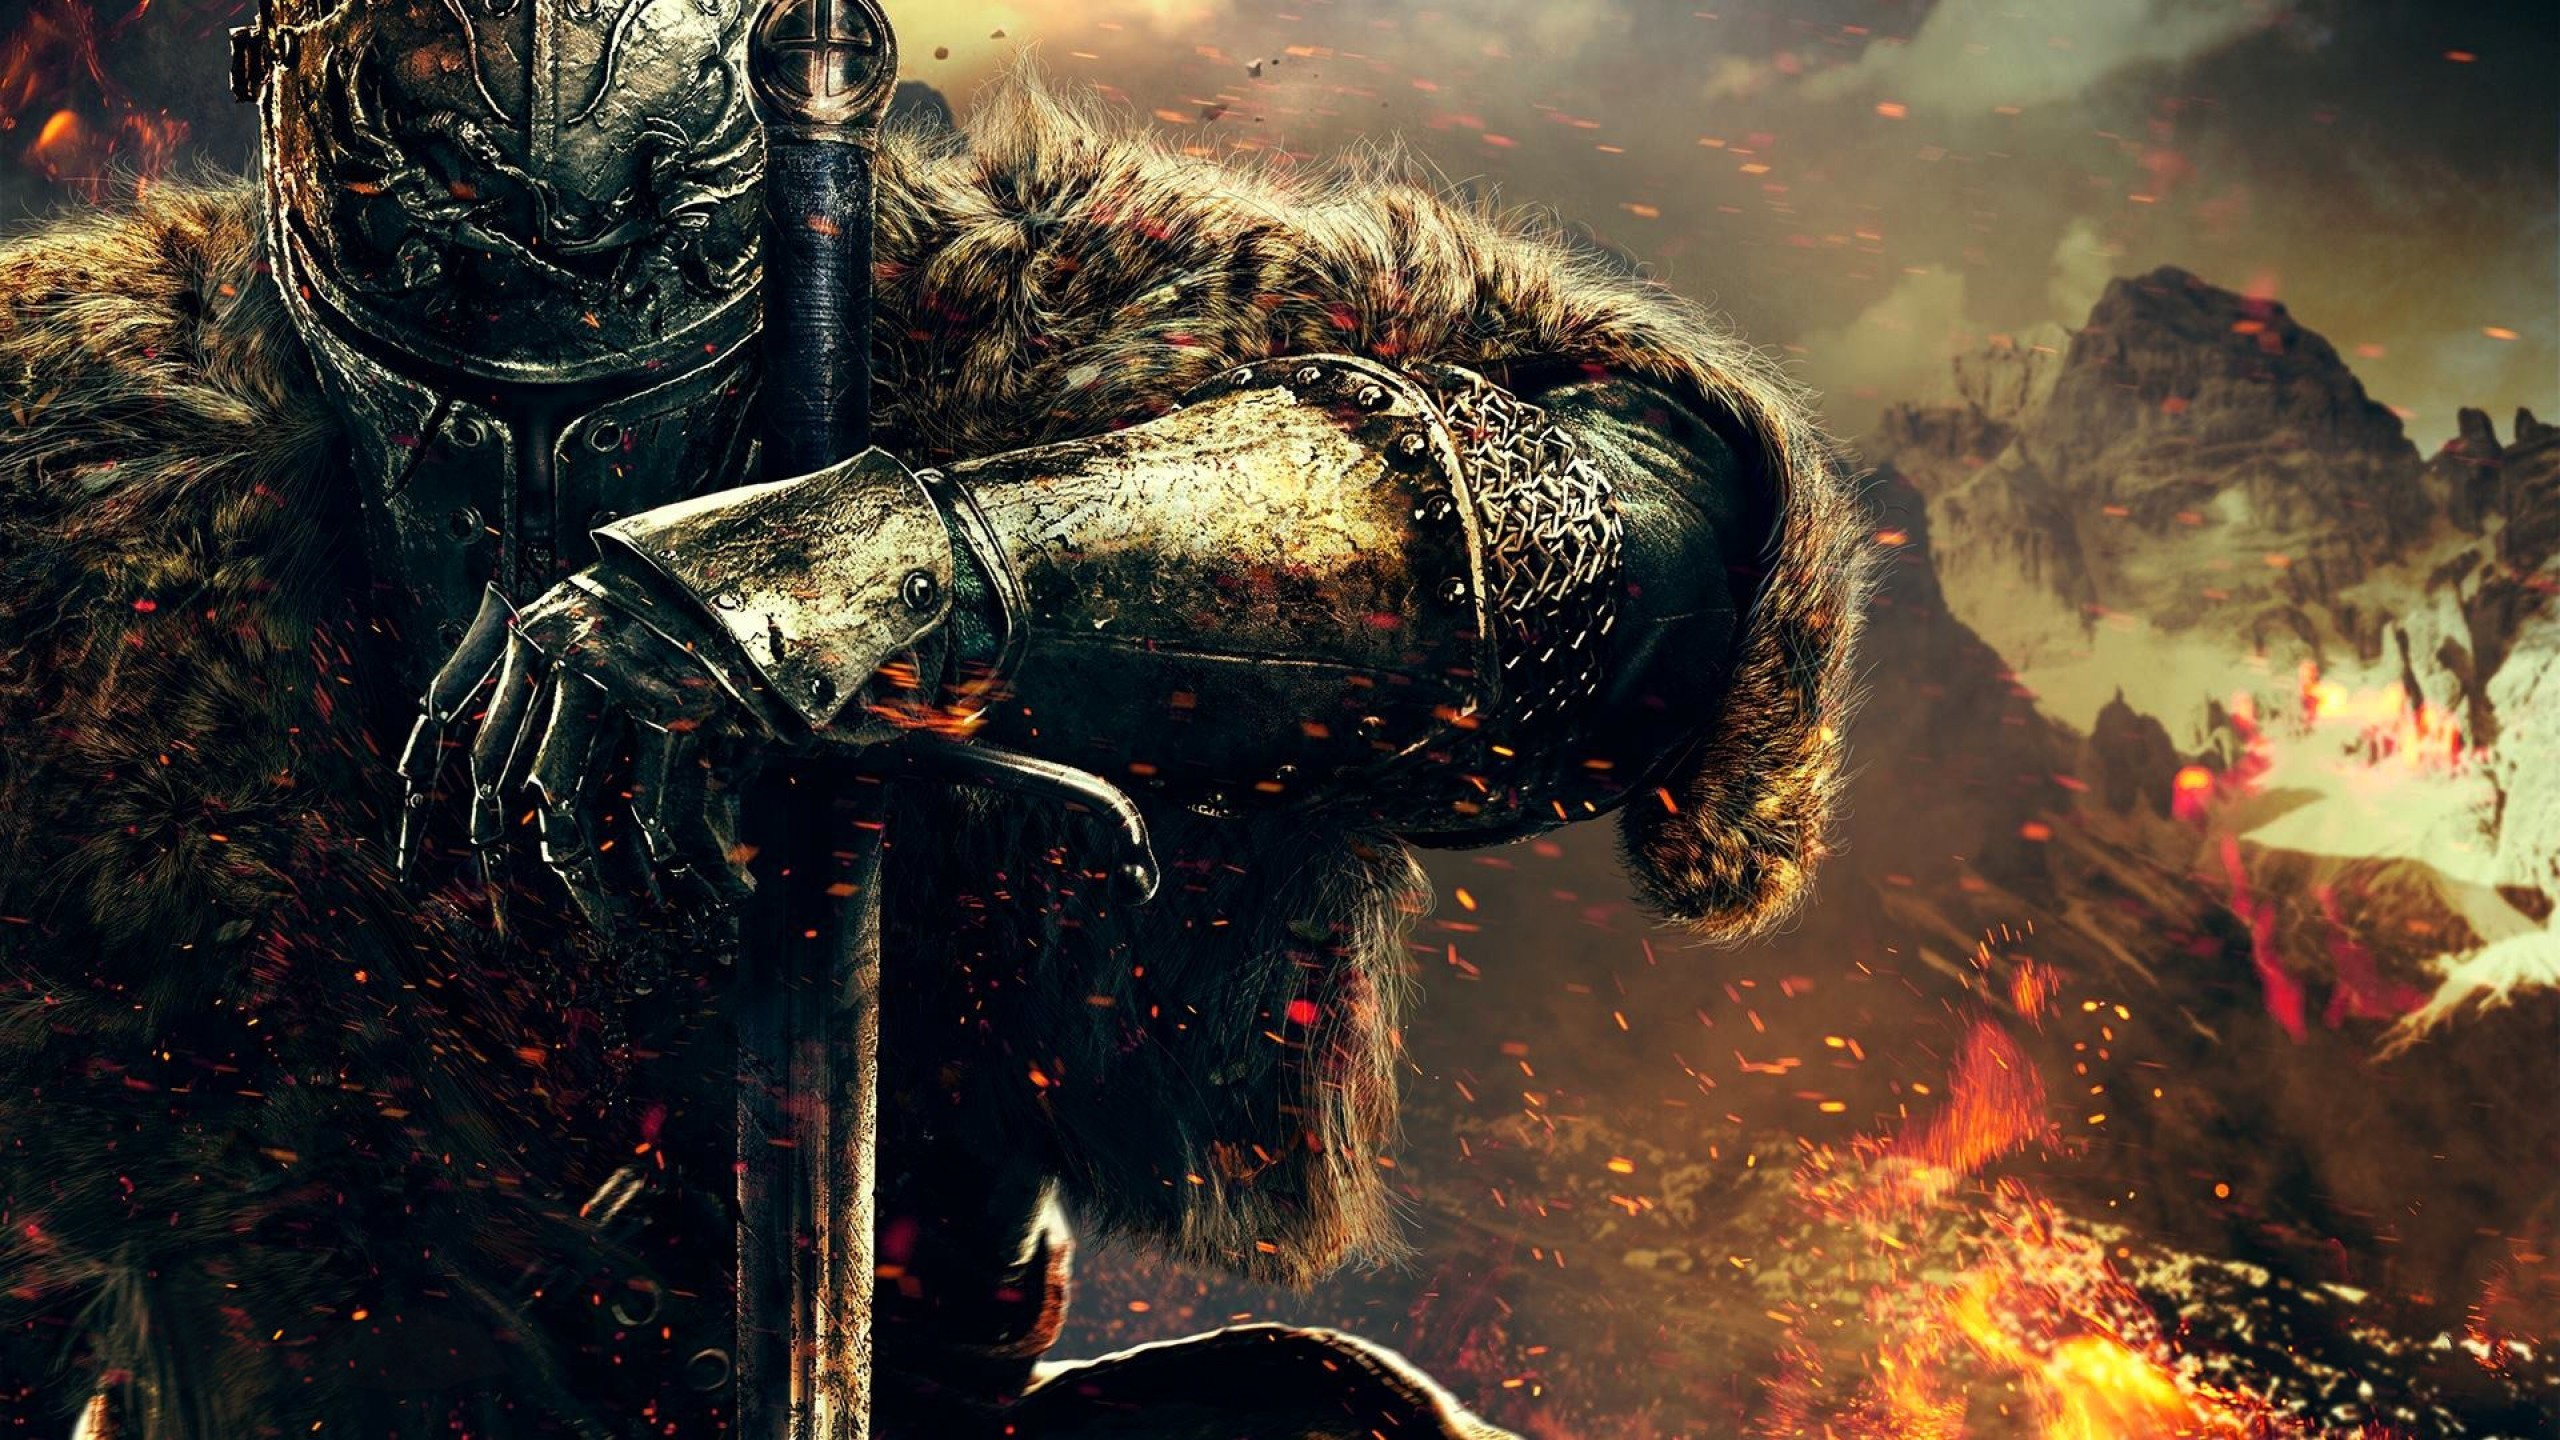 Res: 2560x1440,  ... games wallpaper  hd wallpapers backgrounds of your  choice .